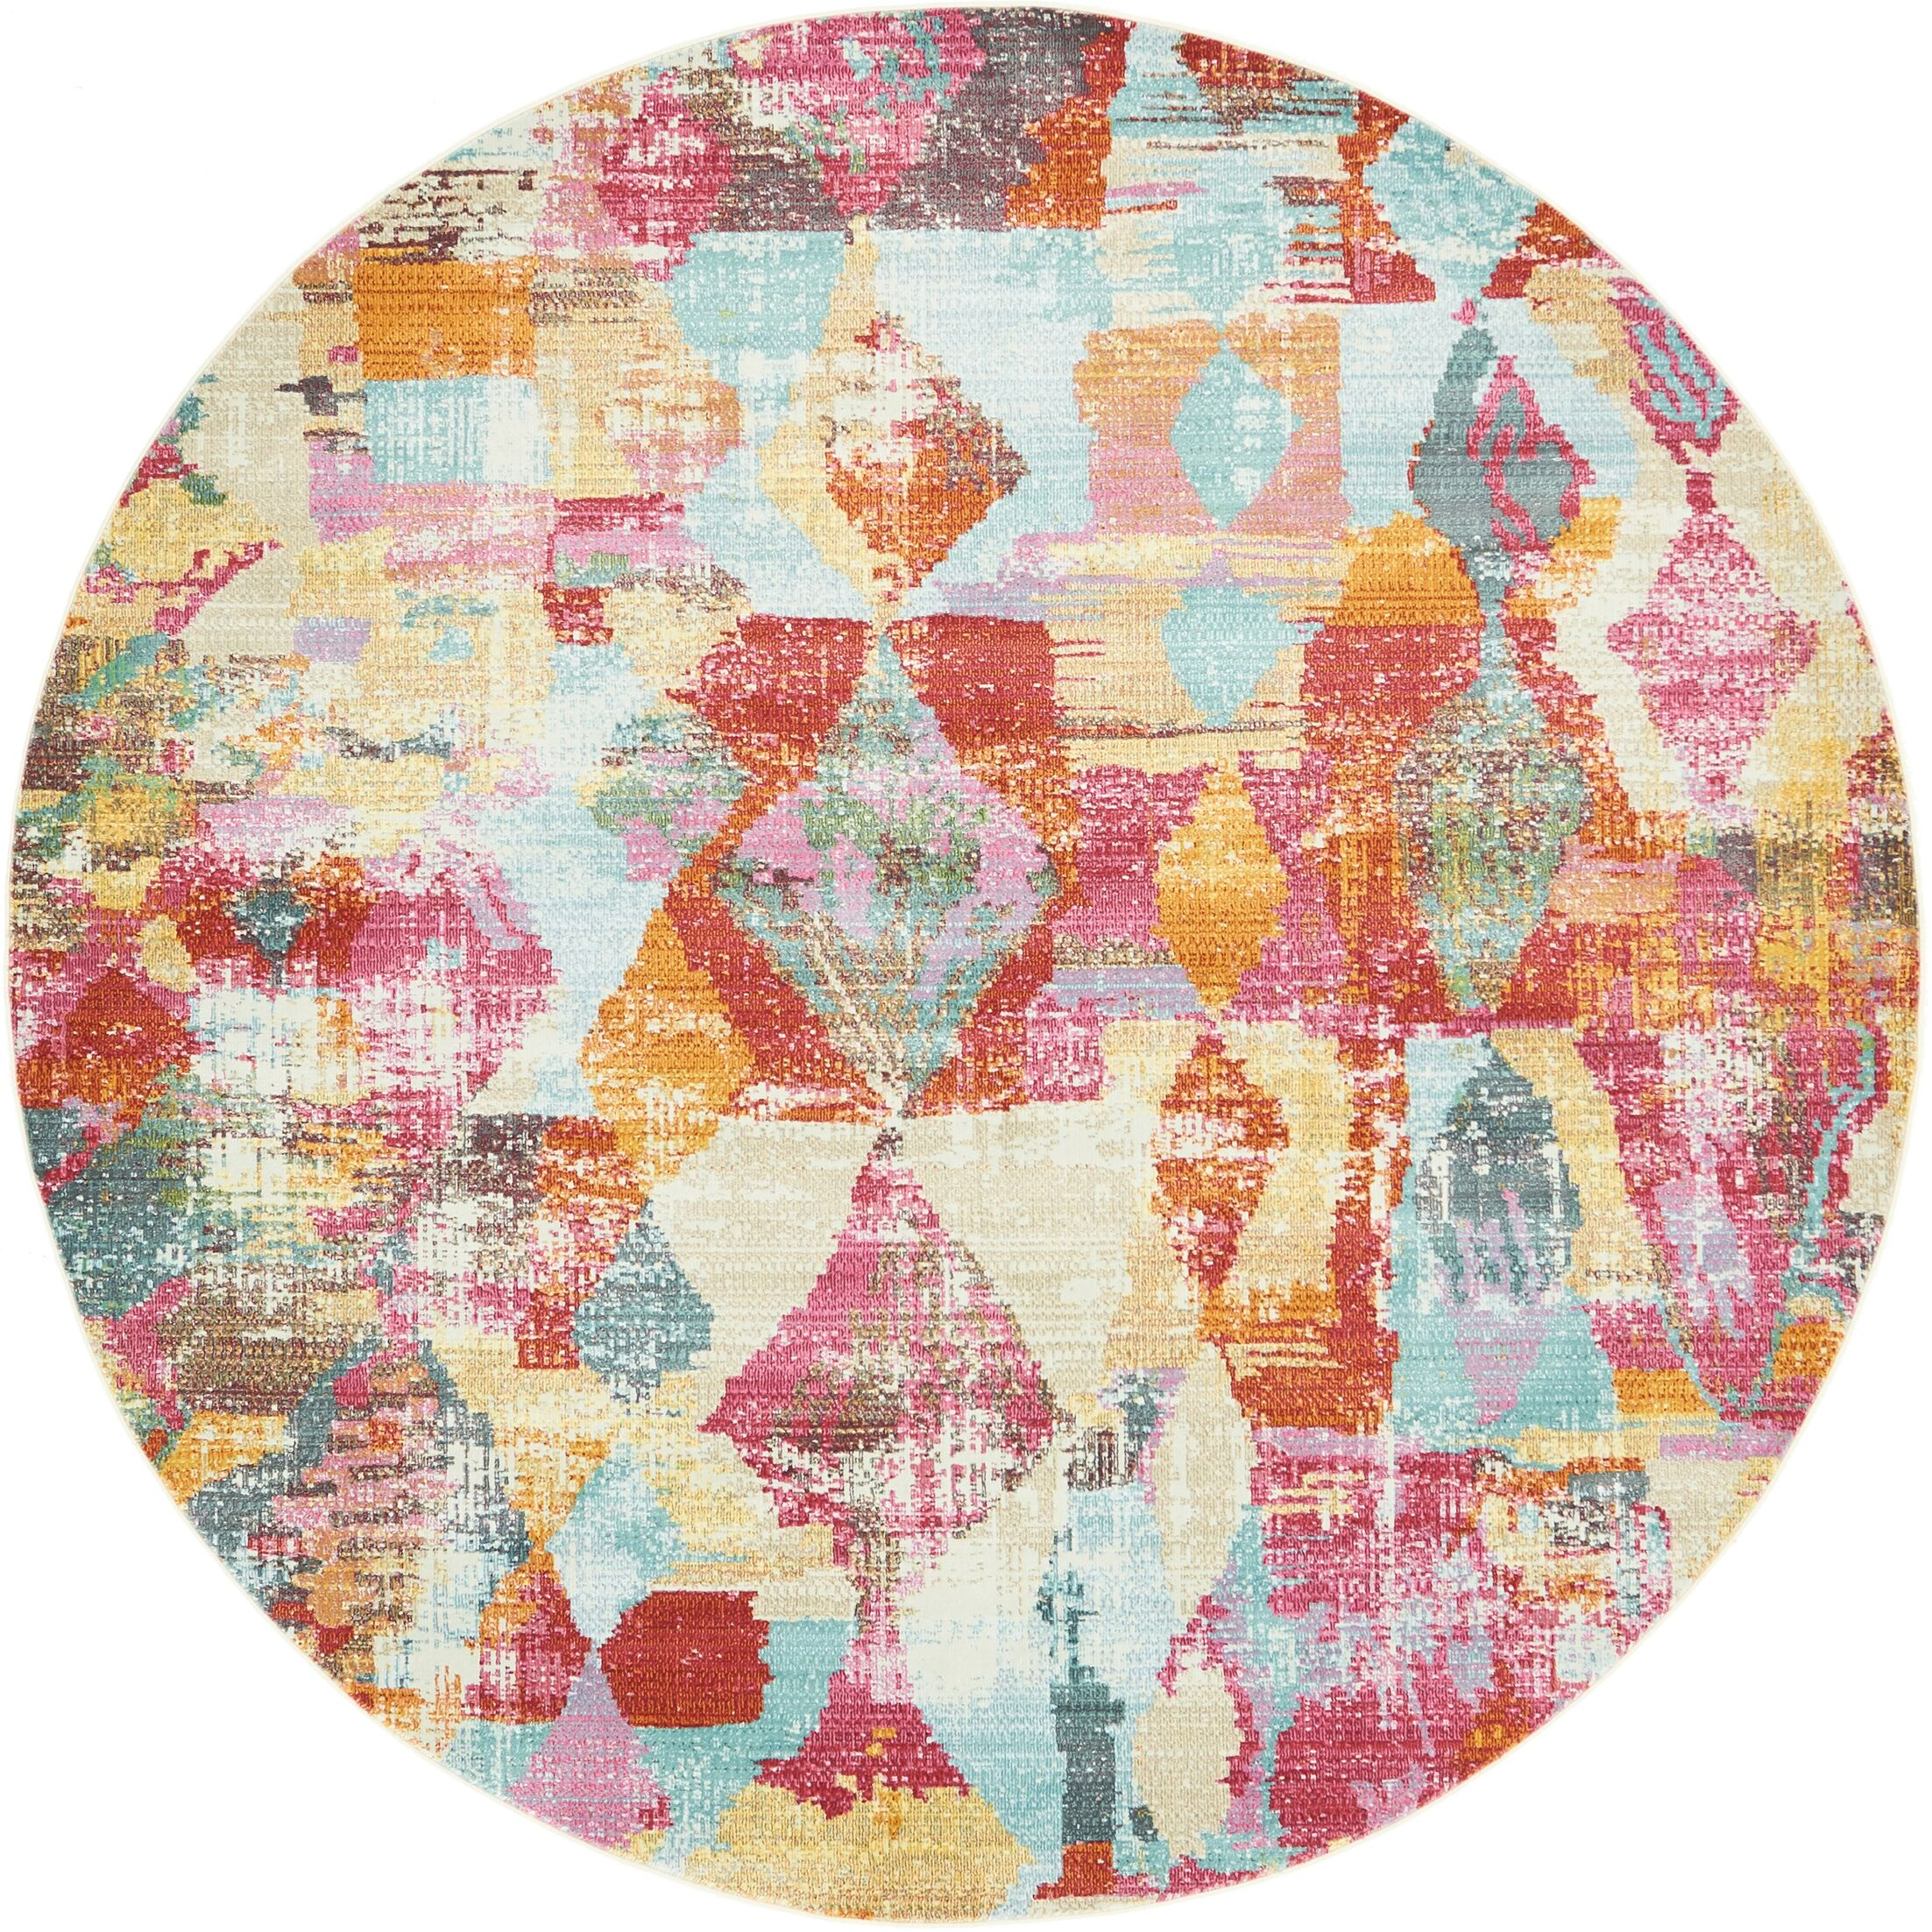 Yearsley Red/Beige/Blue Area Rug Rug Size: Round 8'2